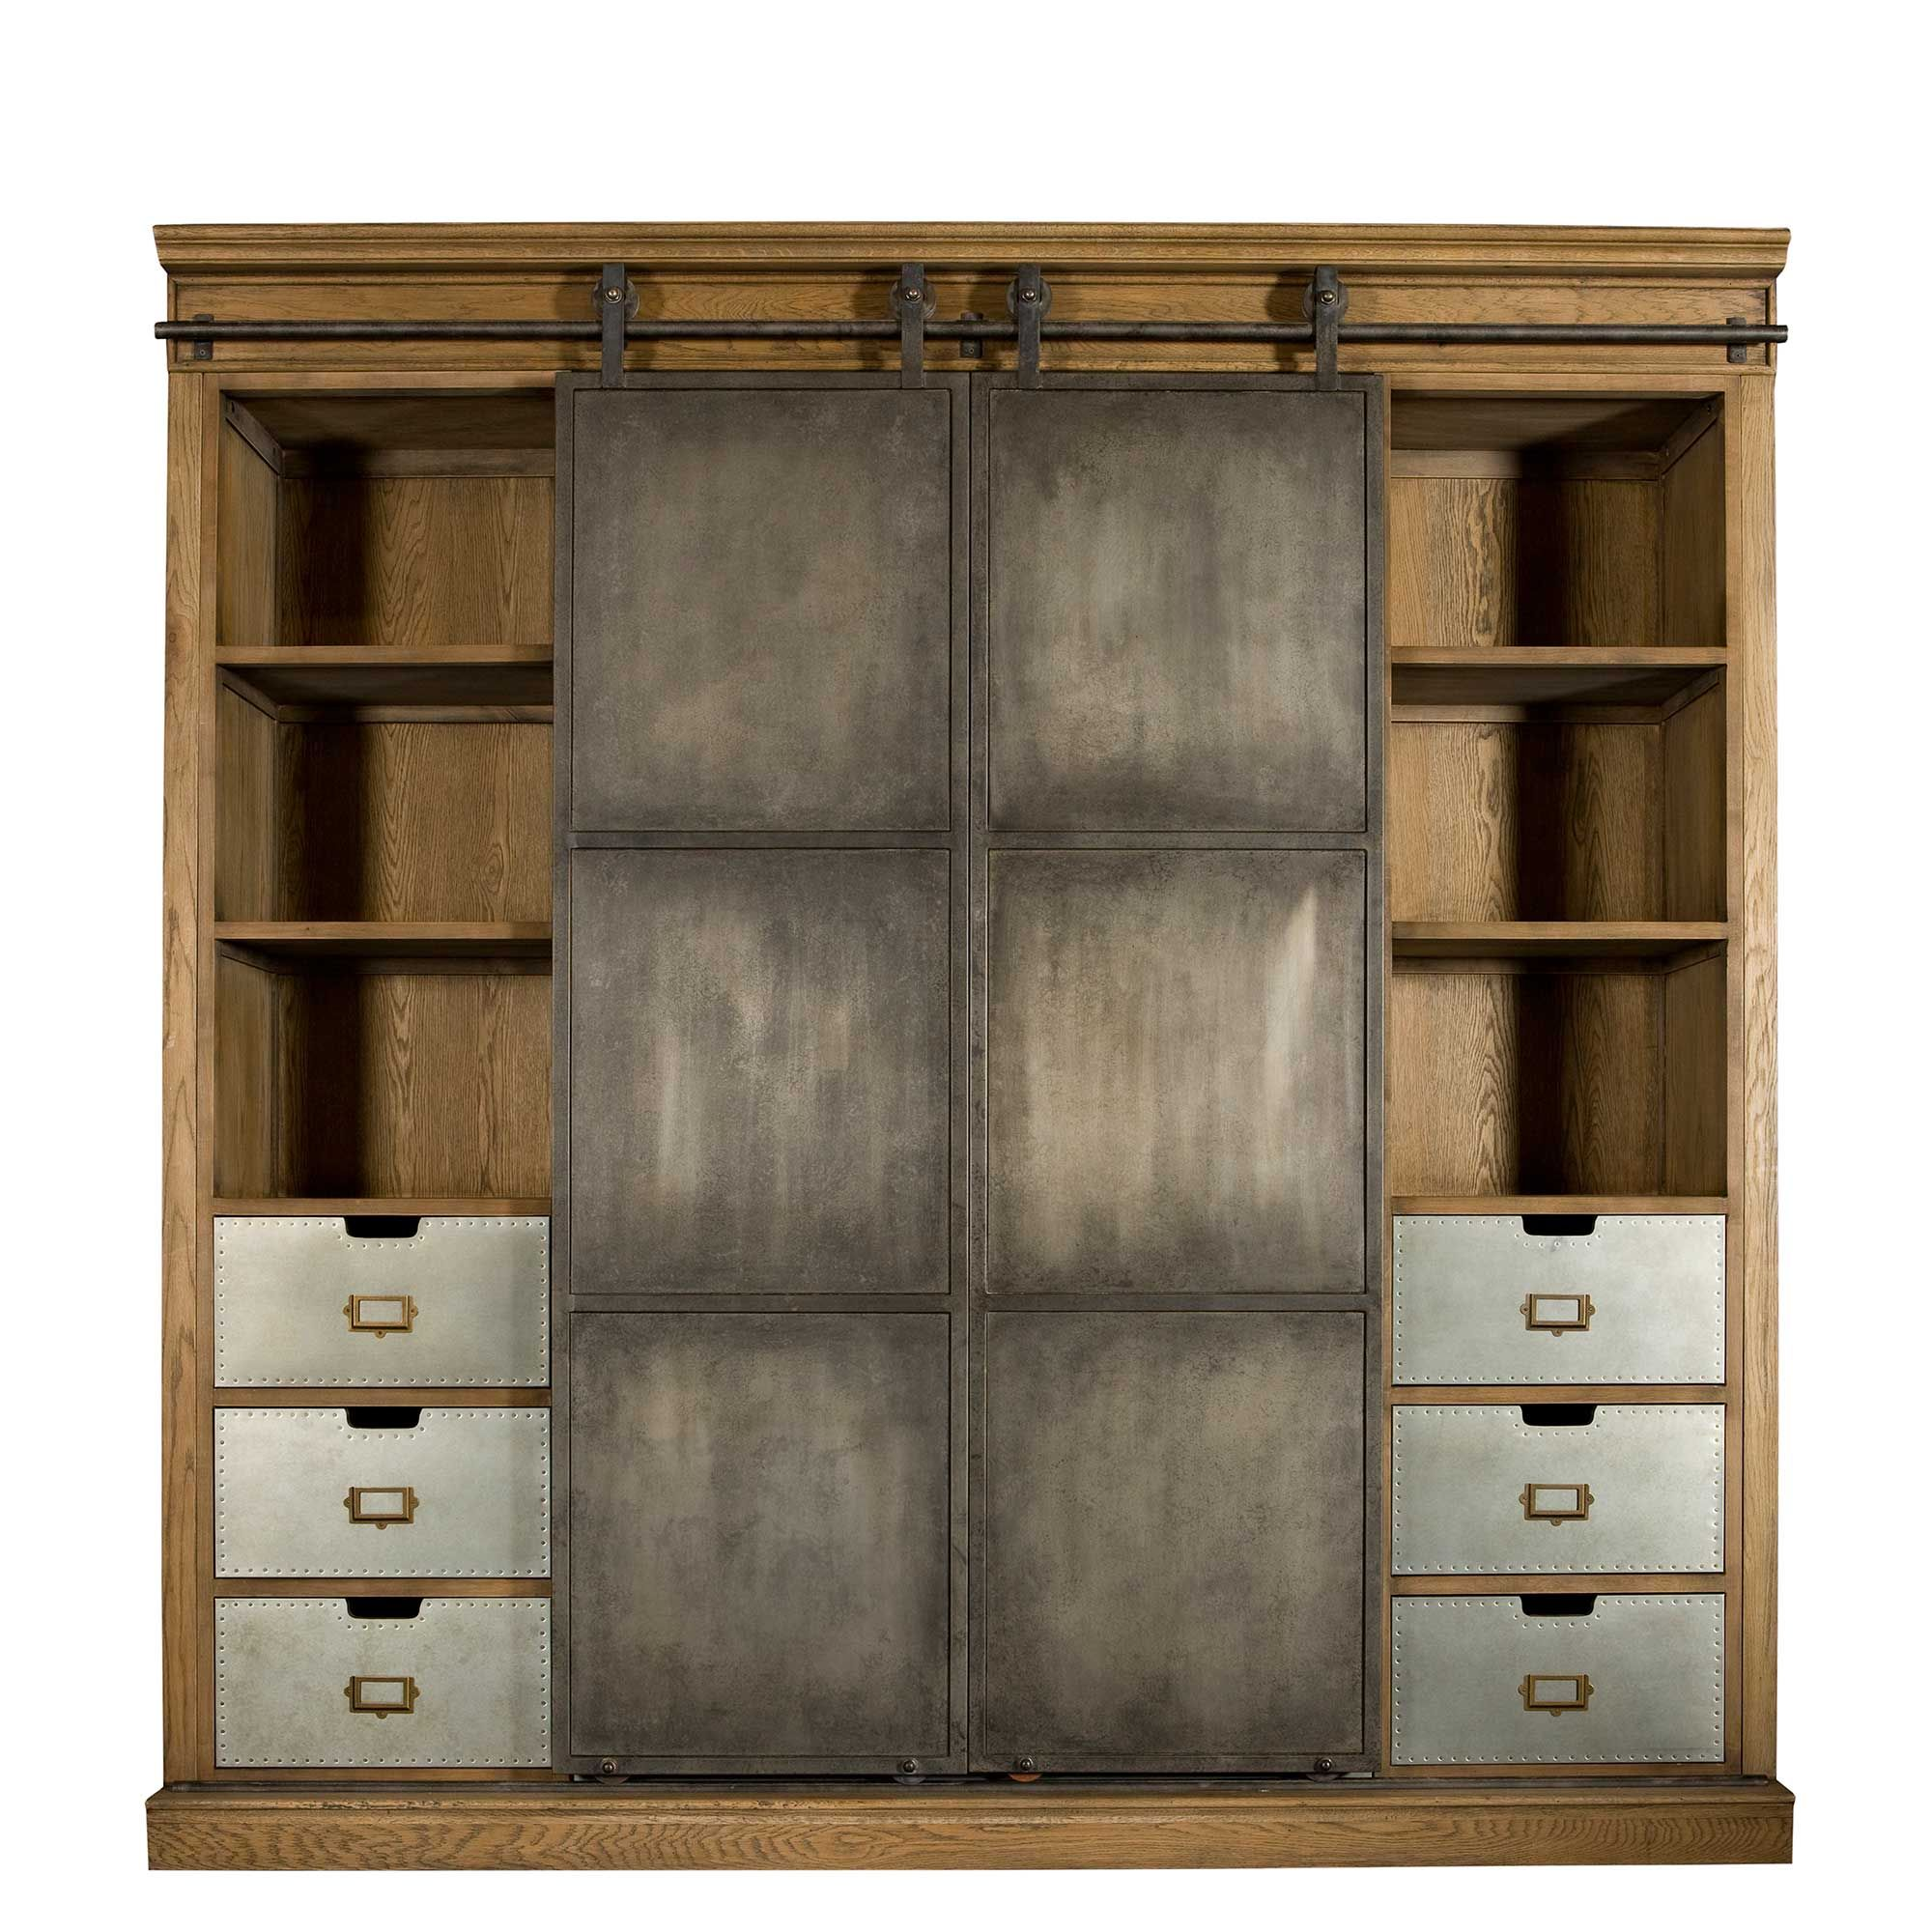 This Grand Cabinet With Its Rustic Industrial Charm Boasts Plenty